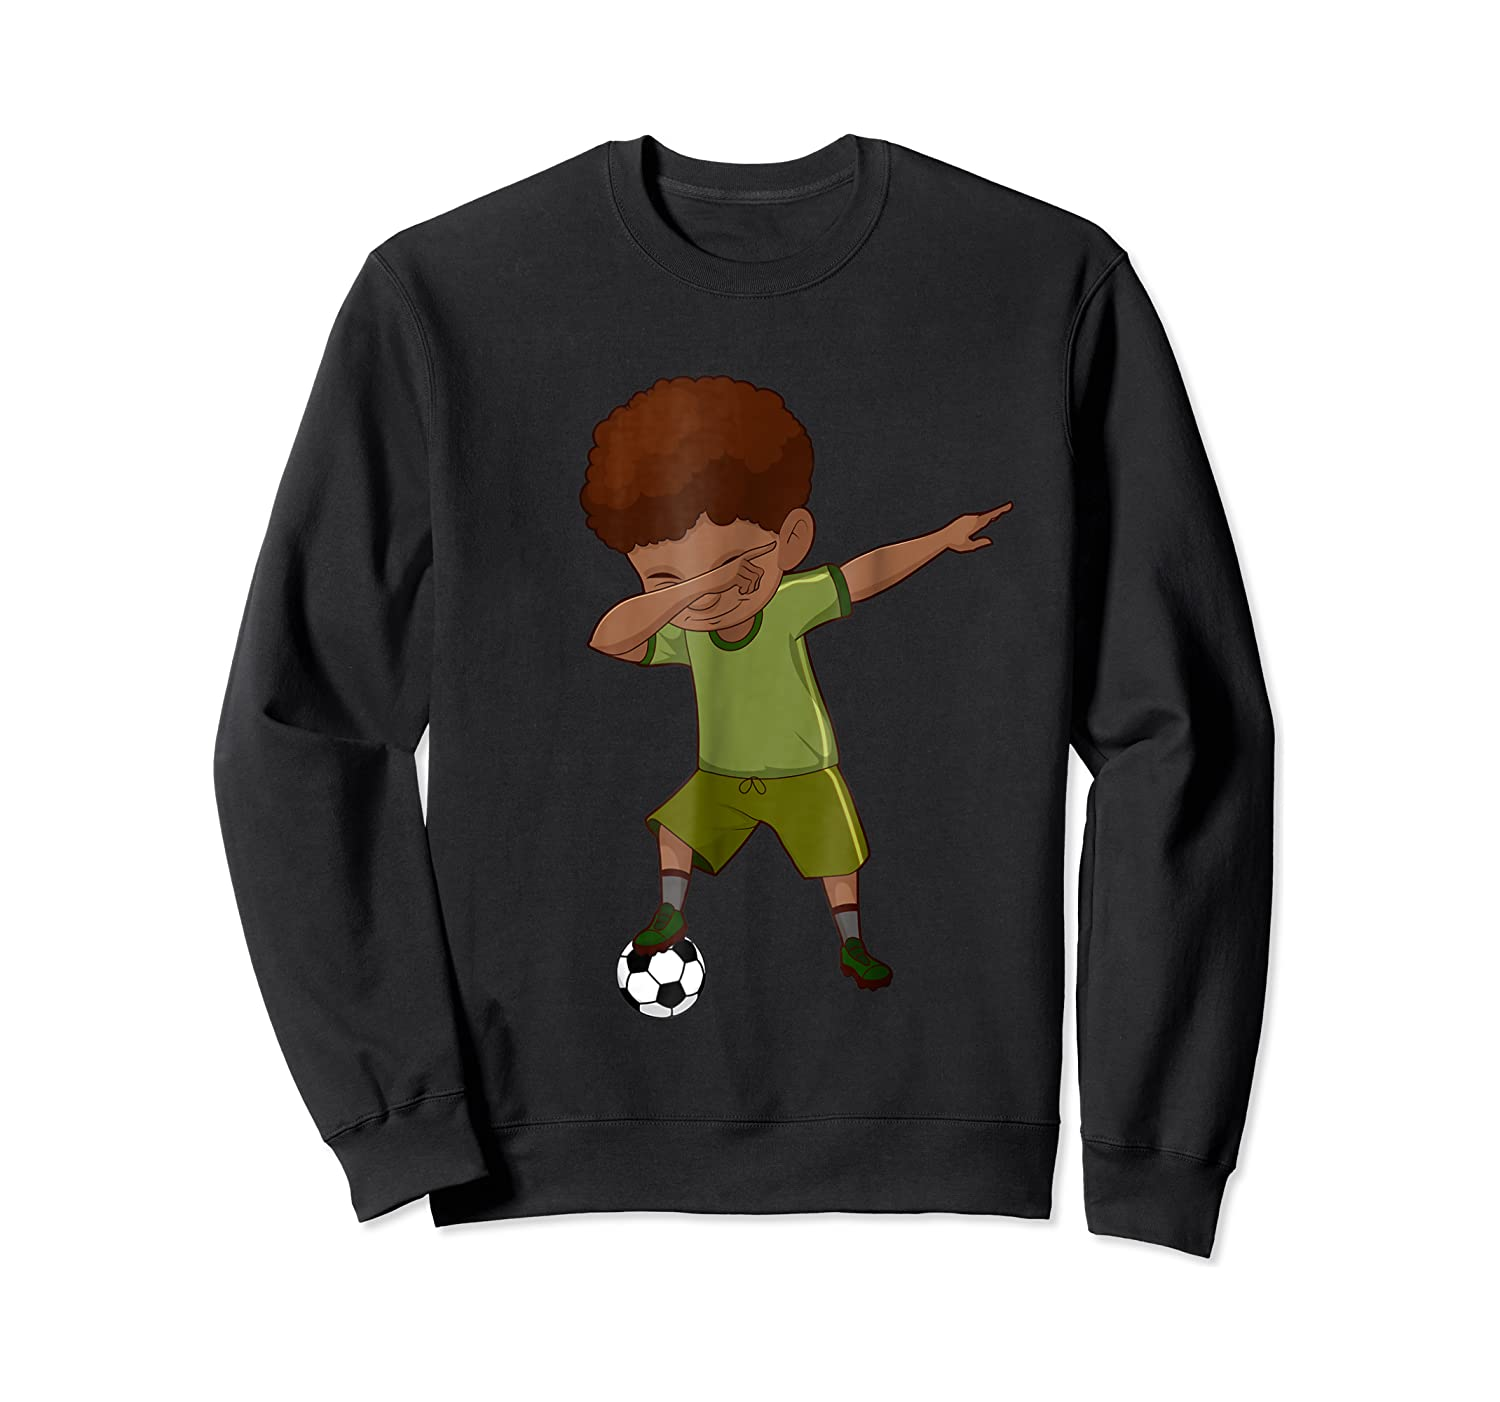 Soccer Shirt For Funny Dabbing Tee Gifts Crewneck Sweater